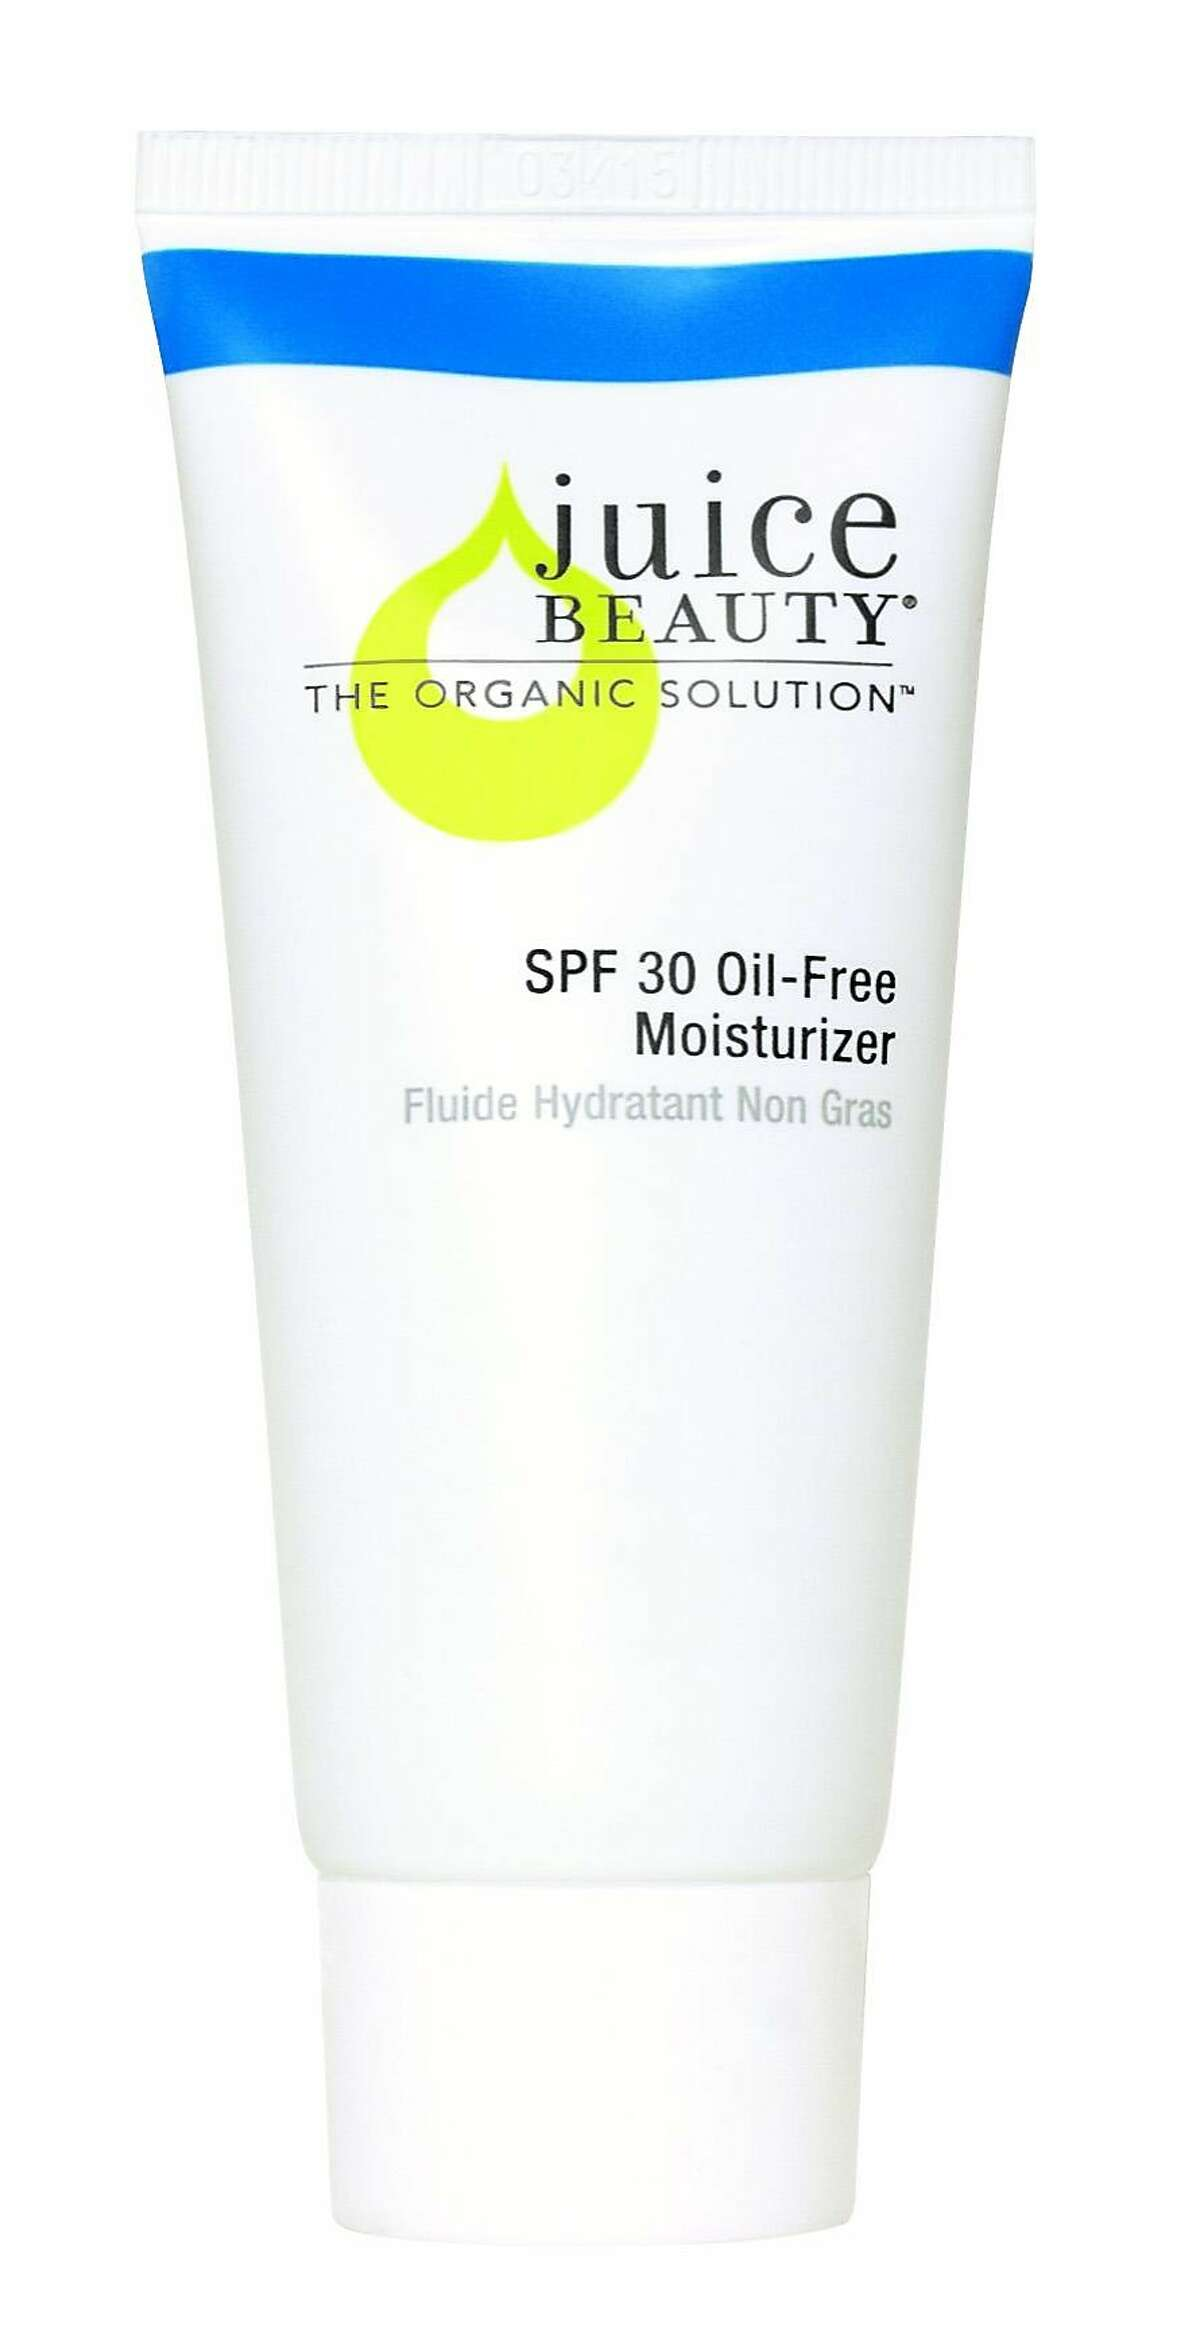 Juice Beauty�s SPF 30 Oil-Free Moisturizer��($29, 2 oz., https://www.juicebeauty.com) is billed as a moisturizer � it contains a cocktail of apple, grape and aloe juice, plus hyaluronic acid � but 20 percent non-nano zinc oxide sunscreen is the active ingredient.